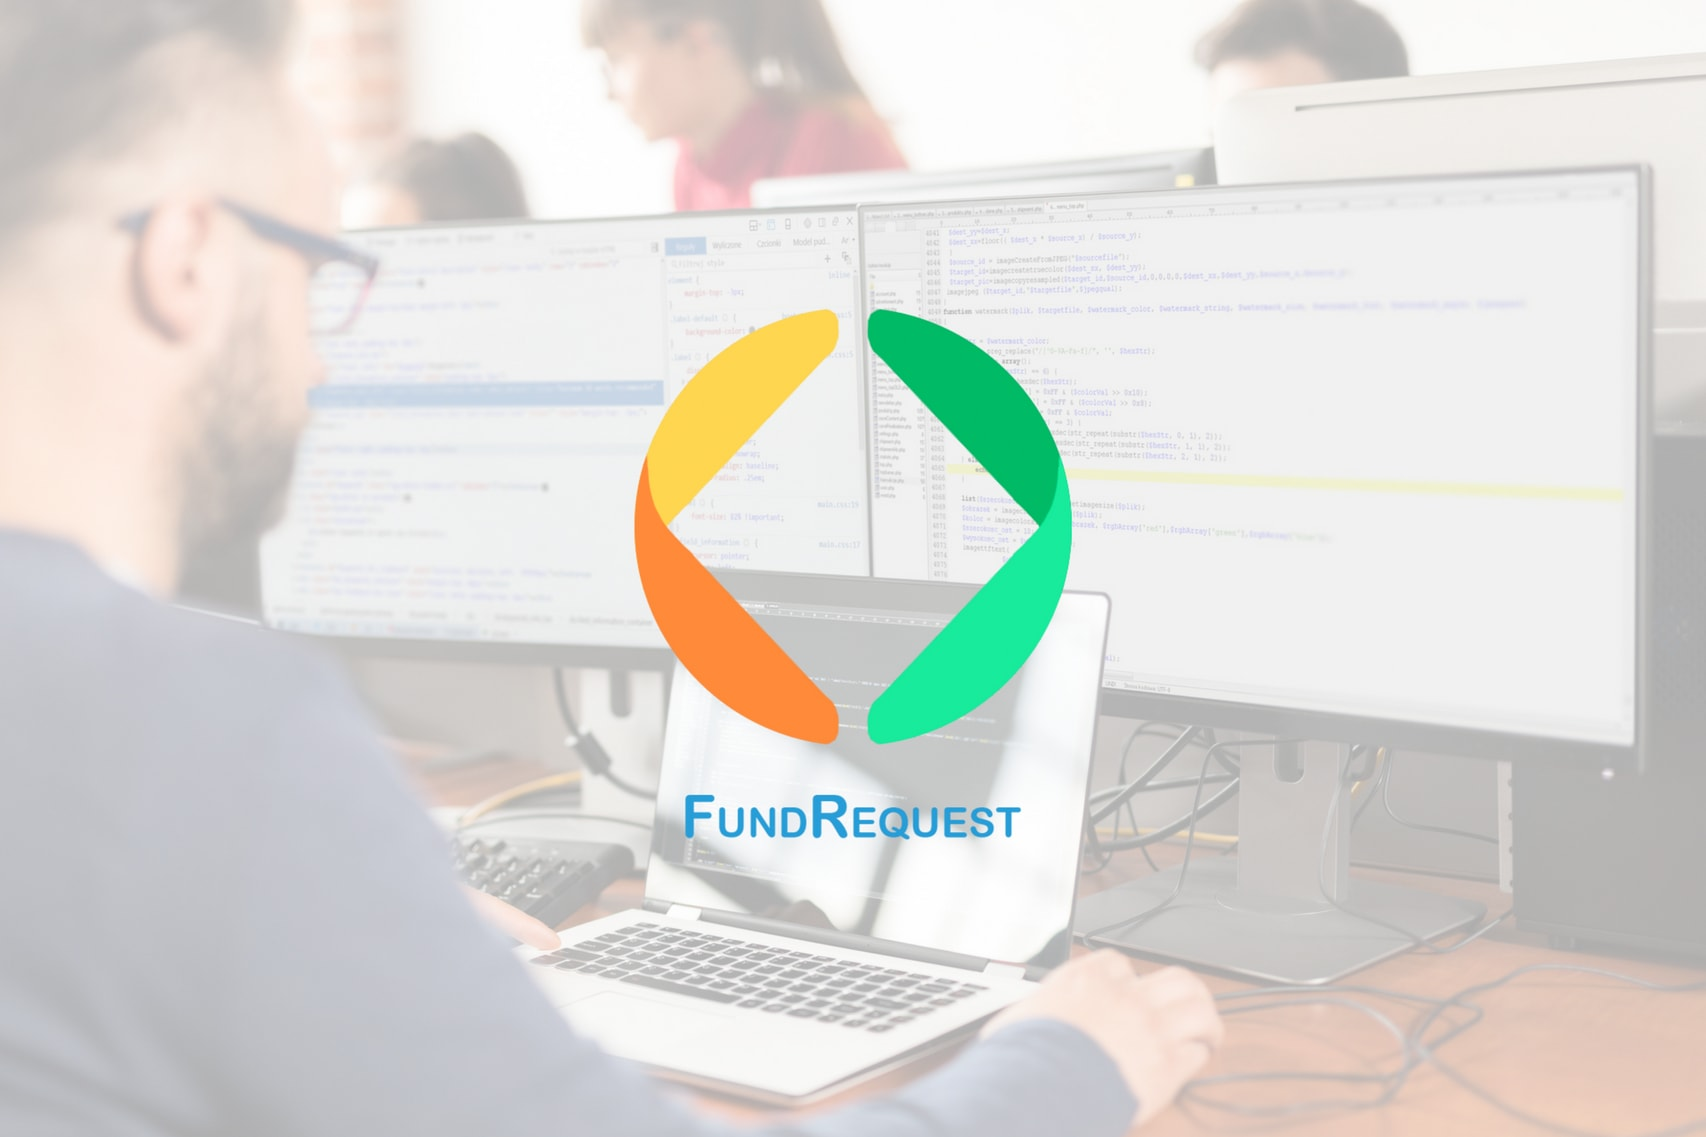 FundRequest Launches Platform